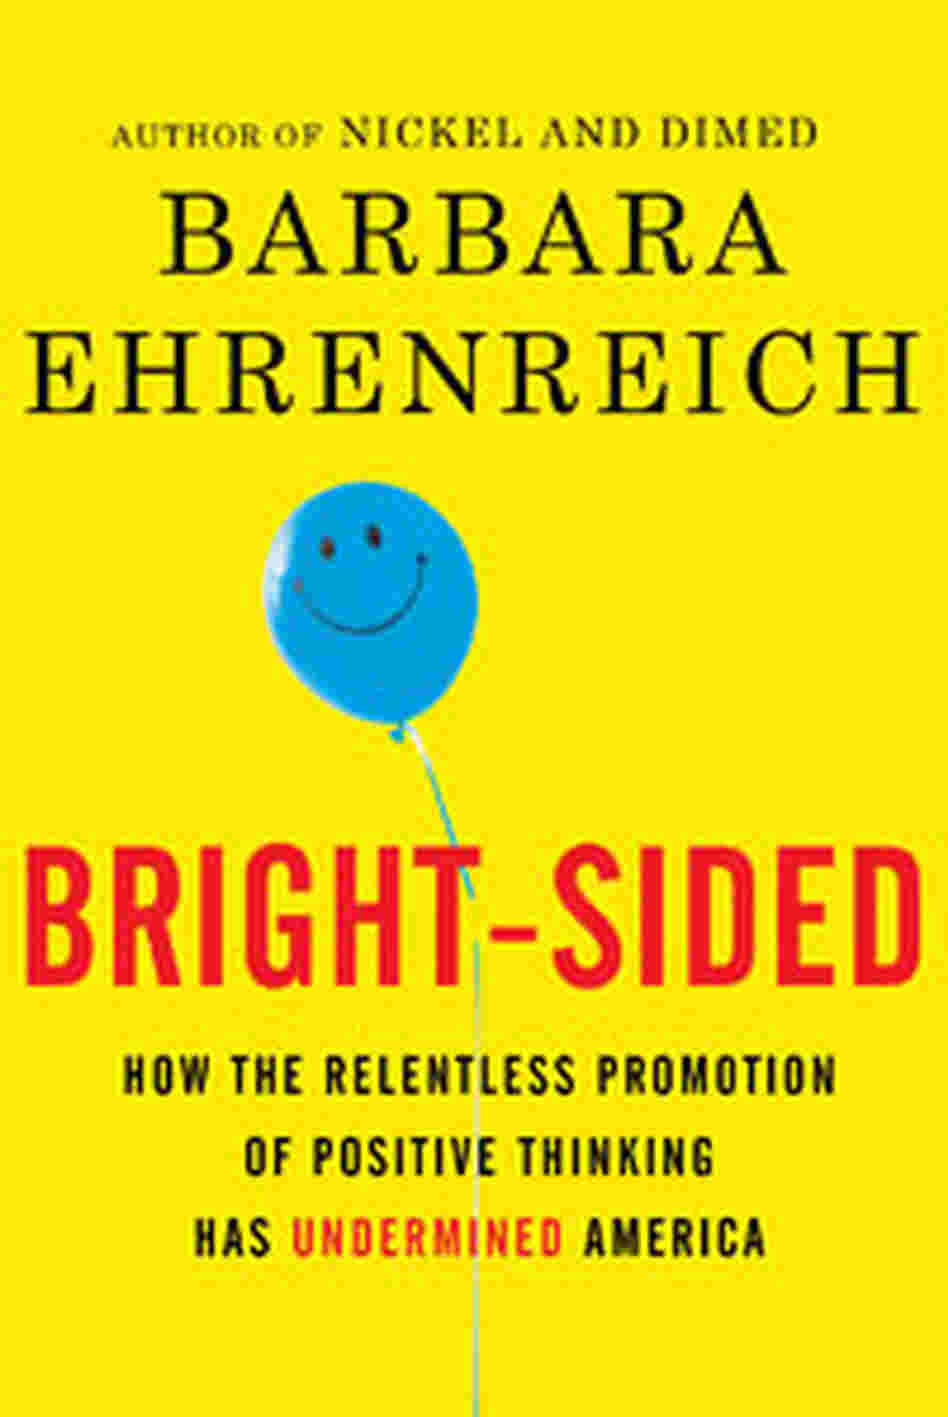 Book Cover of Bright-sided